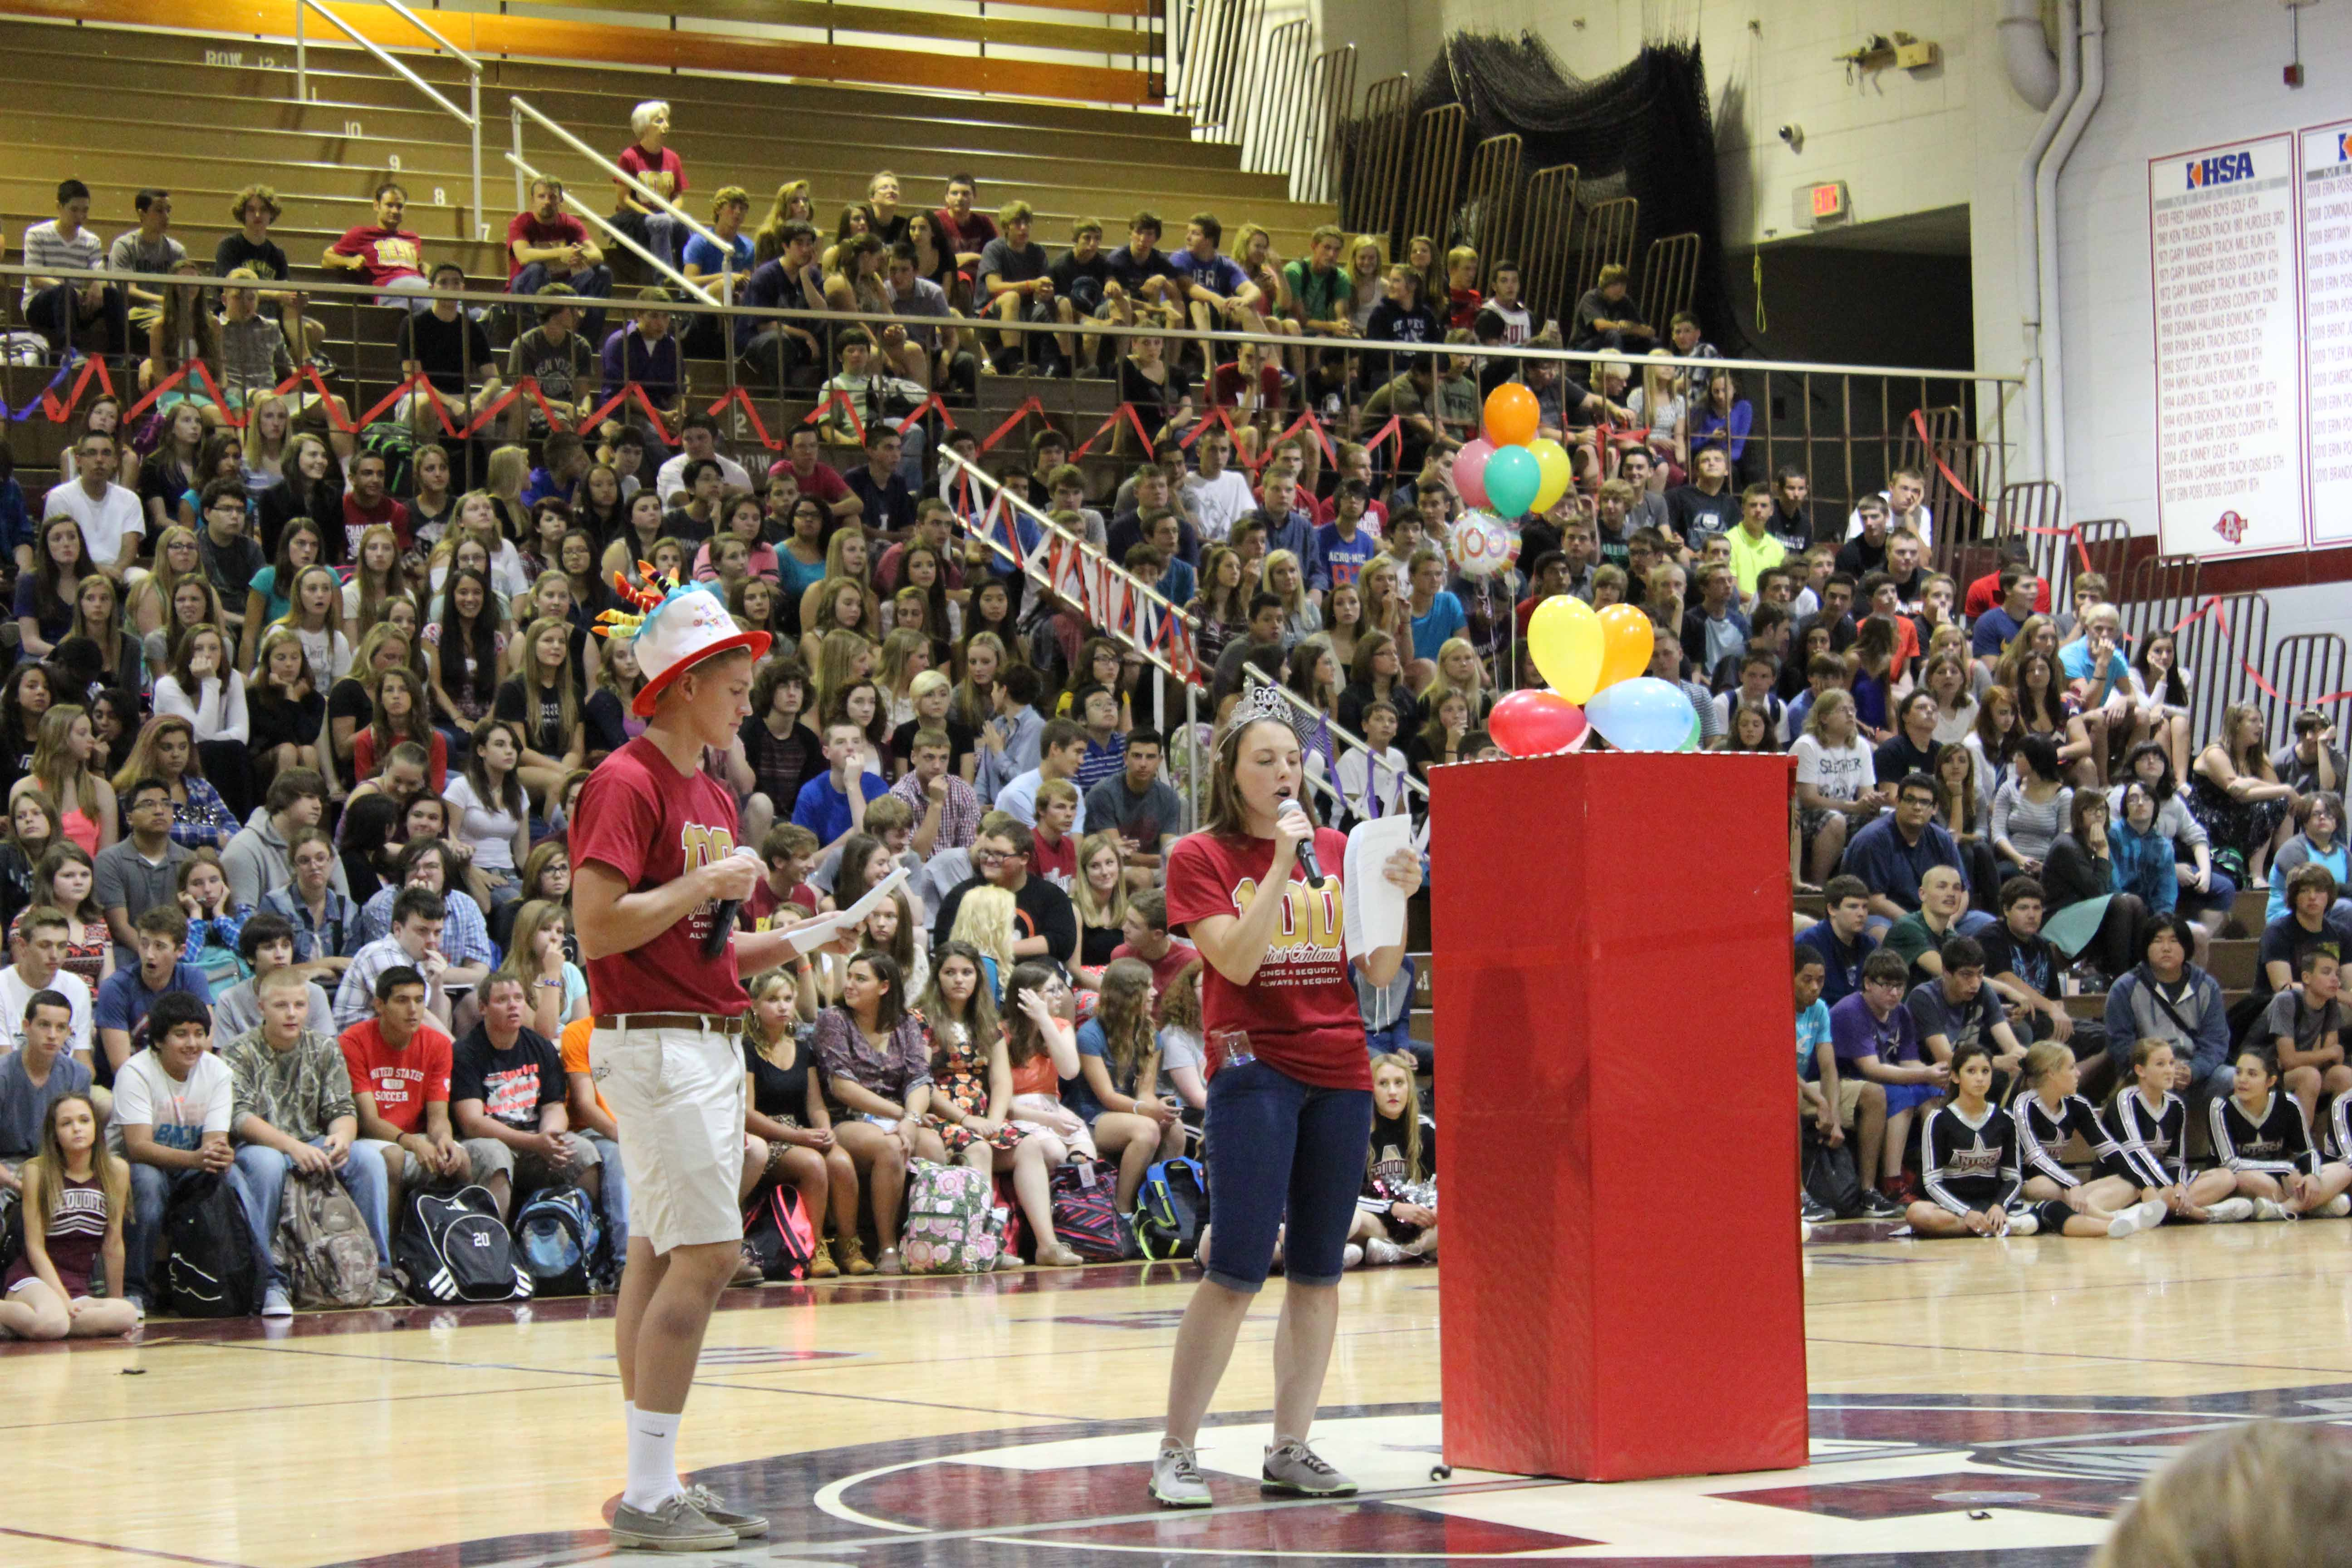 The ACHS student section practicing the new Cardinal Crazies chant at the pep assembly on Aug. 18.